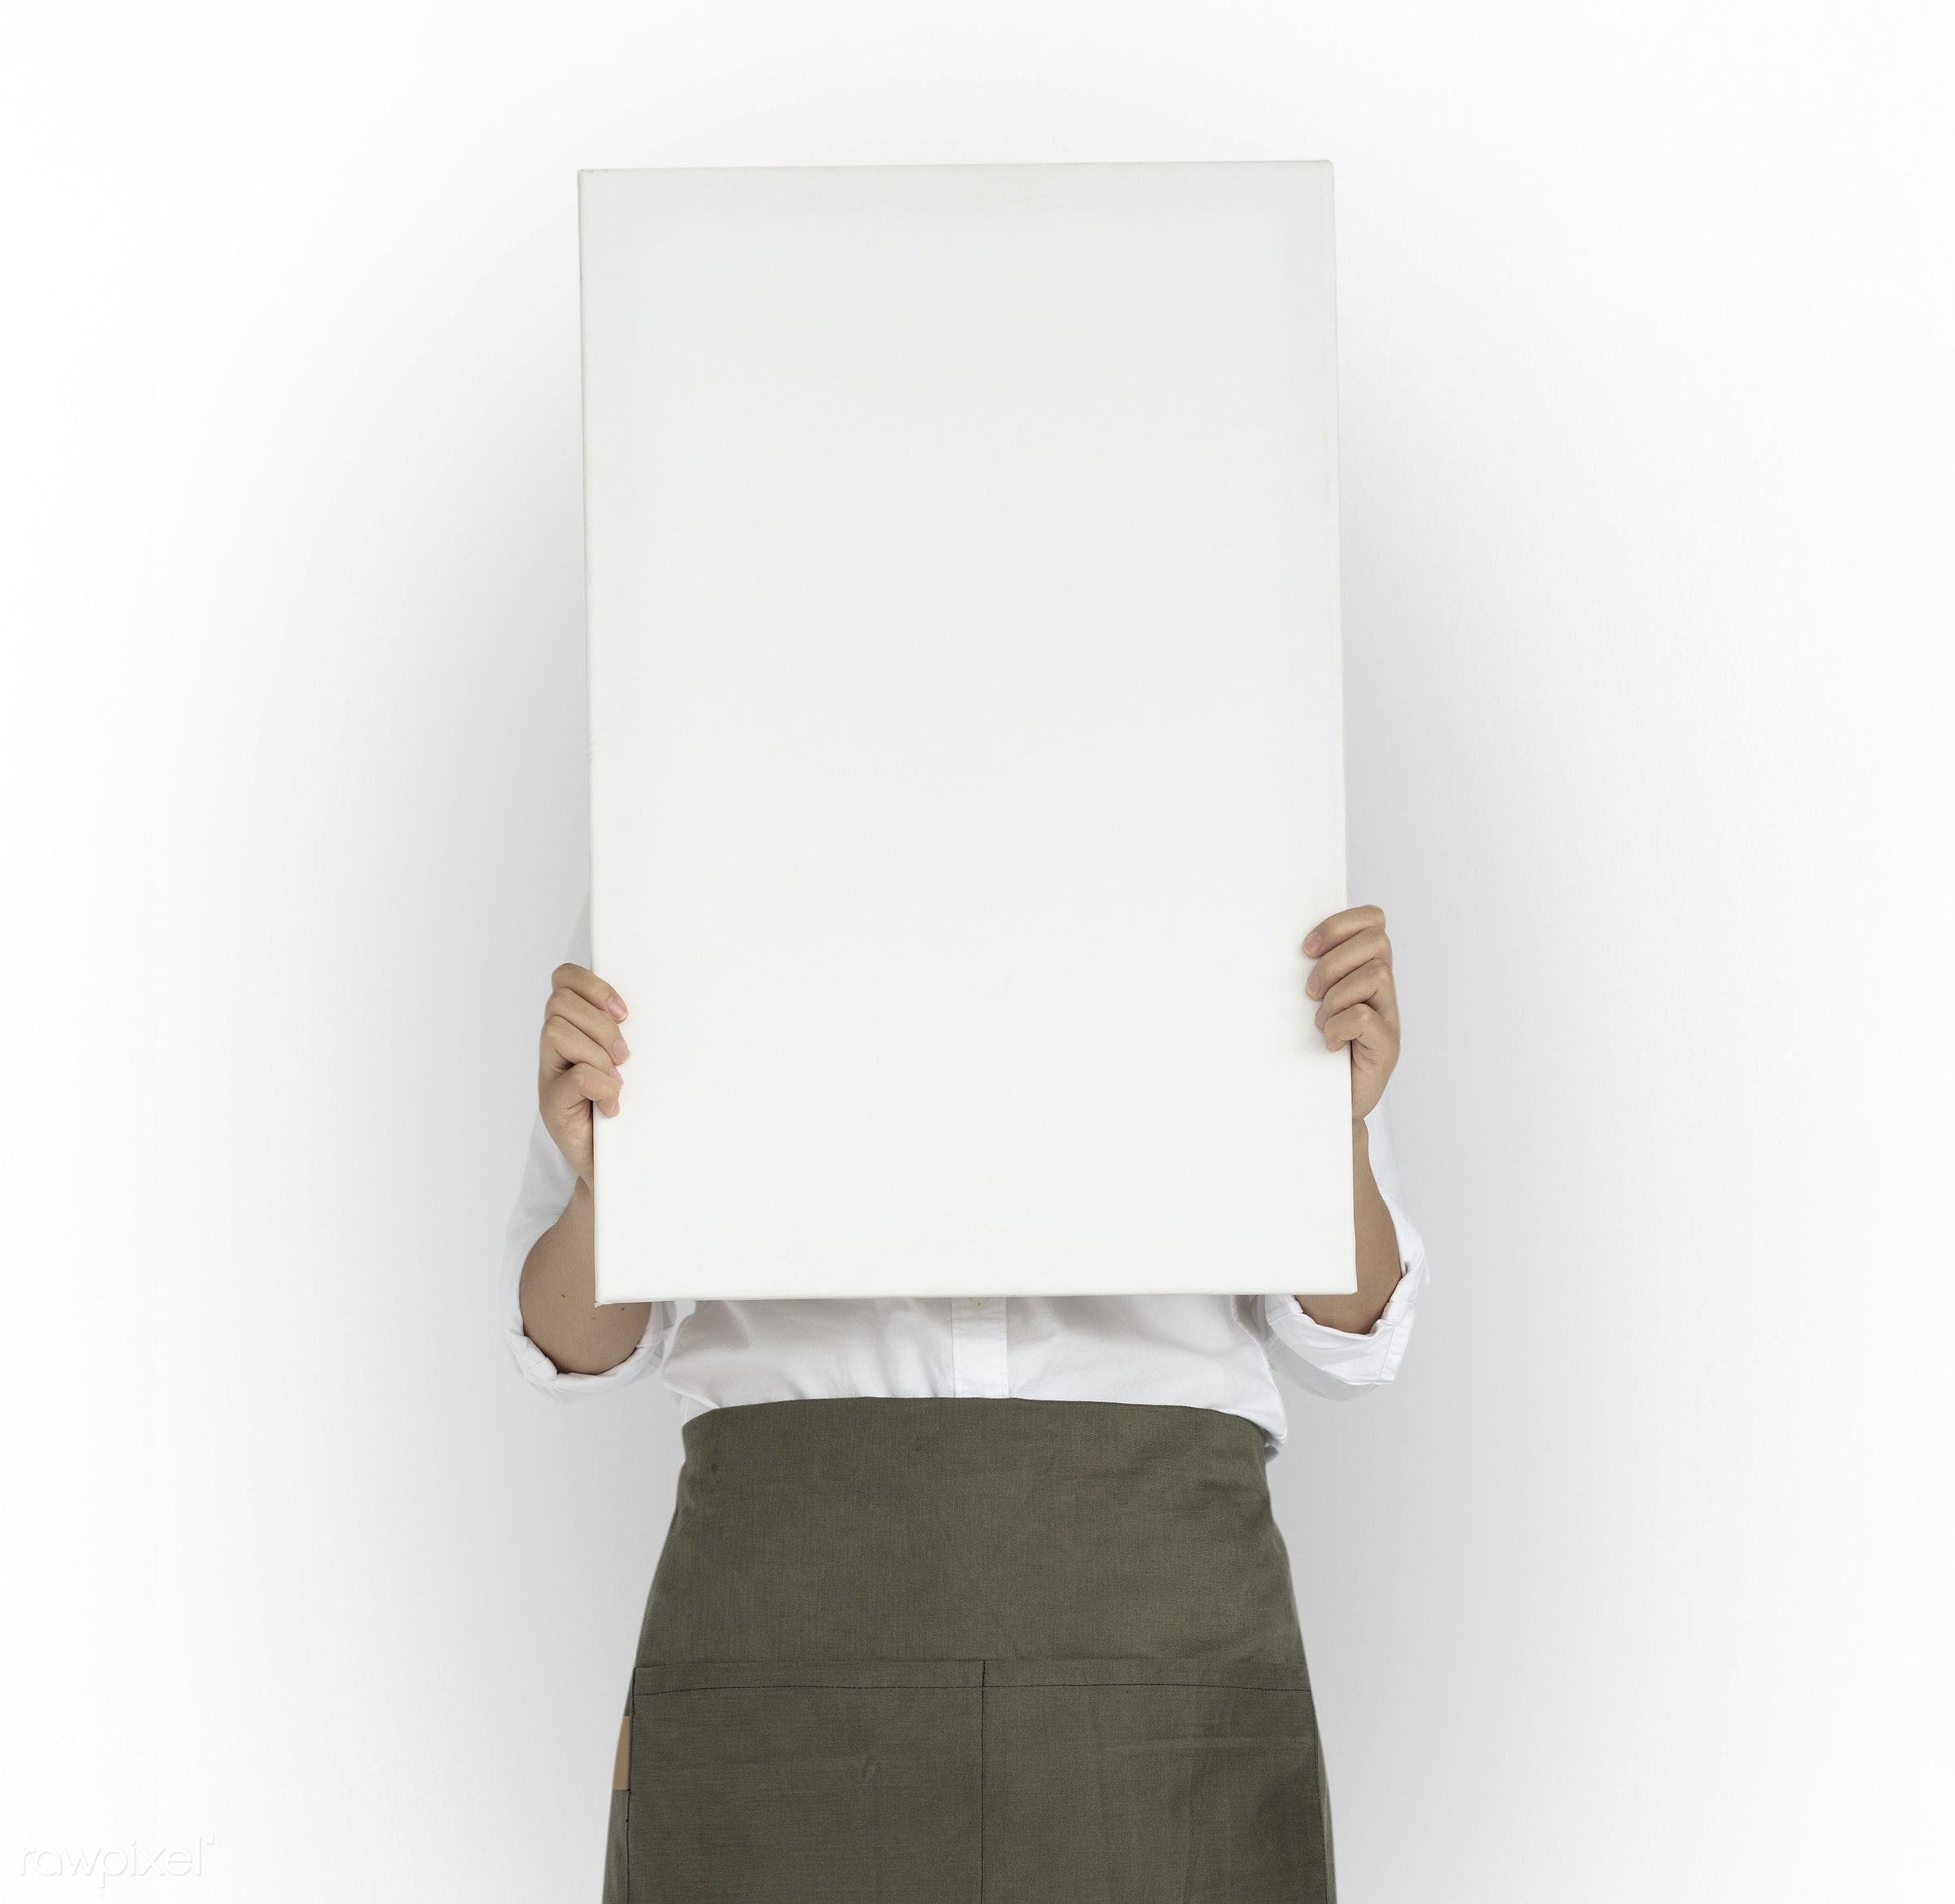 studio, copy space, person, isolated on white, people, placard, cover, girl, woman, casual, banner, isolated, blank, white,...